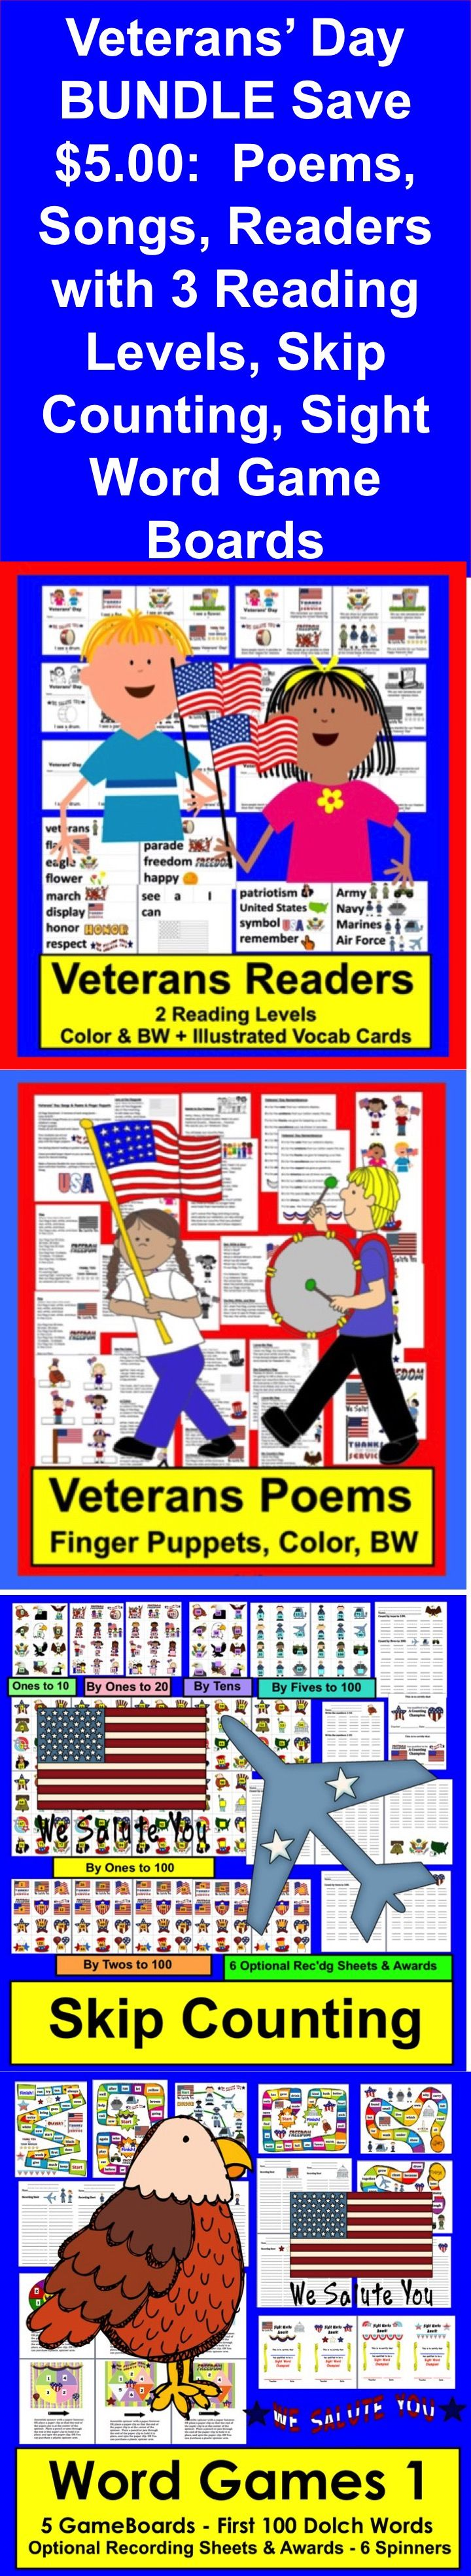 best ideas about veterans day poem veterans day veterans day activities math and literacy bundle value save 5 00